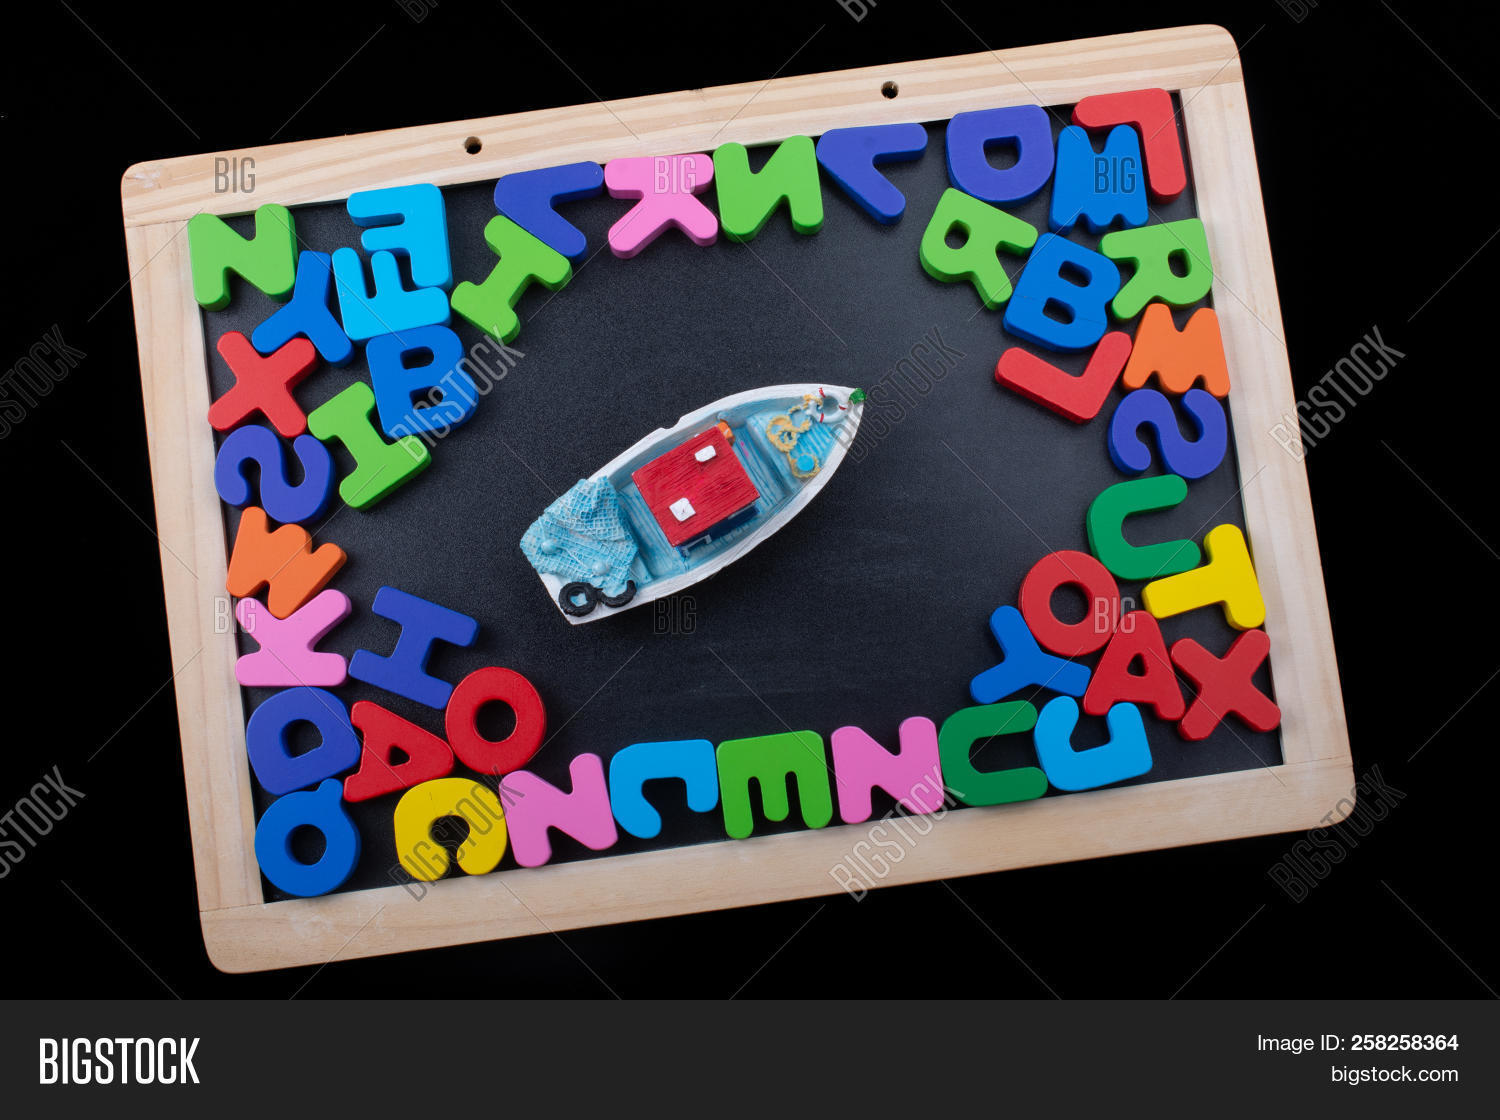 abc,academic,aducational,alphabet,alphabetical,article,backdrop,background,block,boat,business,caption,character,child,childhood,classroom,colorful,concept,creative,development,education,elementary,intelligence,iq,kindergarten,knowledge,learn,lesson,letter,message,pedagogy,preschool,primary,read,scholar,schooling,ship,spell,student,study,subtitle,teaching,text,training,travel,typography,wooden,word